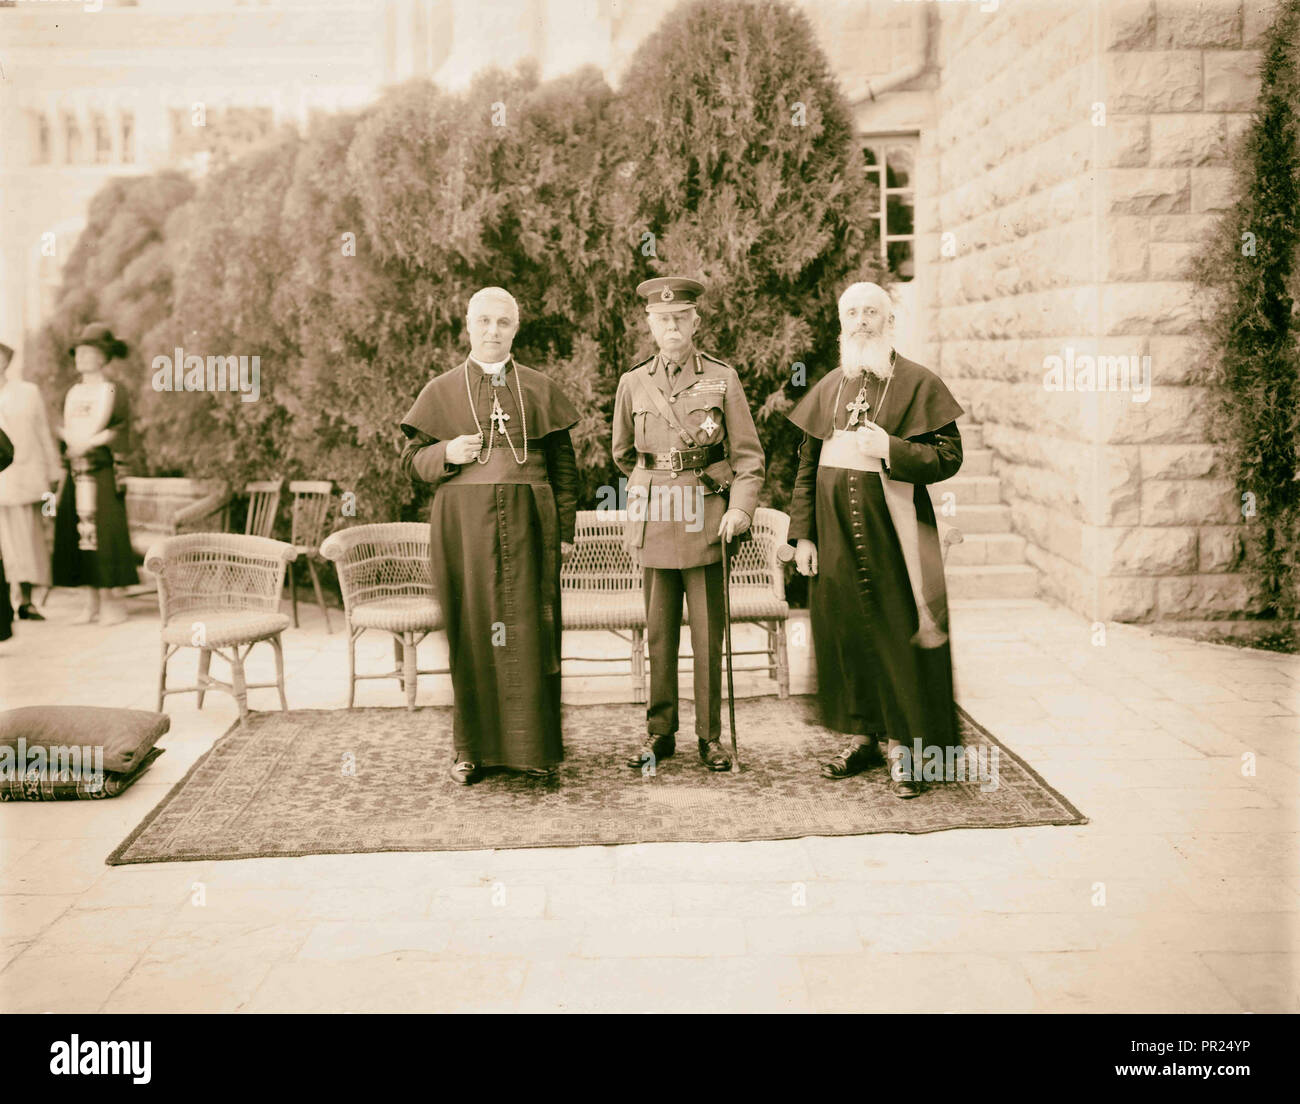 Lord Plumer with archbishop of Naples & Latin Patriarch Aug. 11, 1926. 1926, Jerusalem, Israel - Stock Image